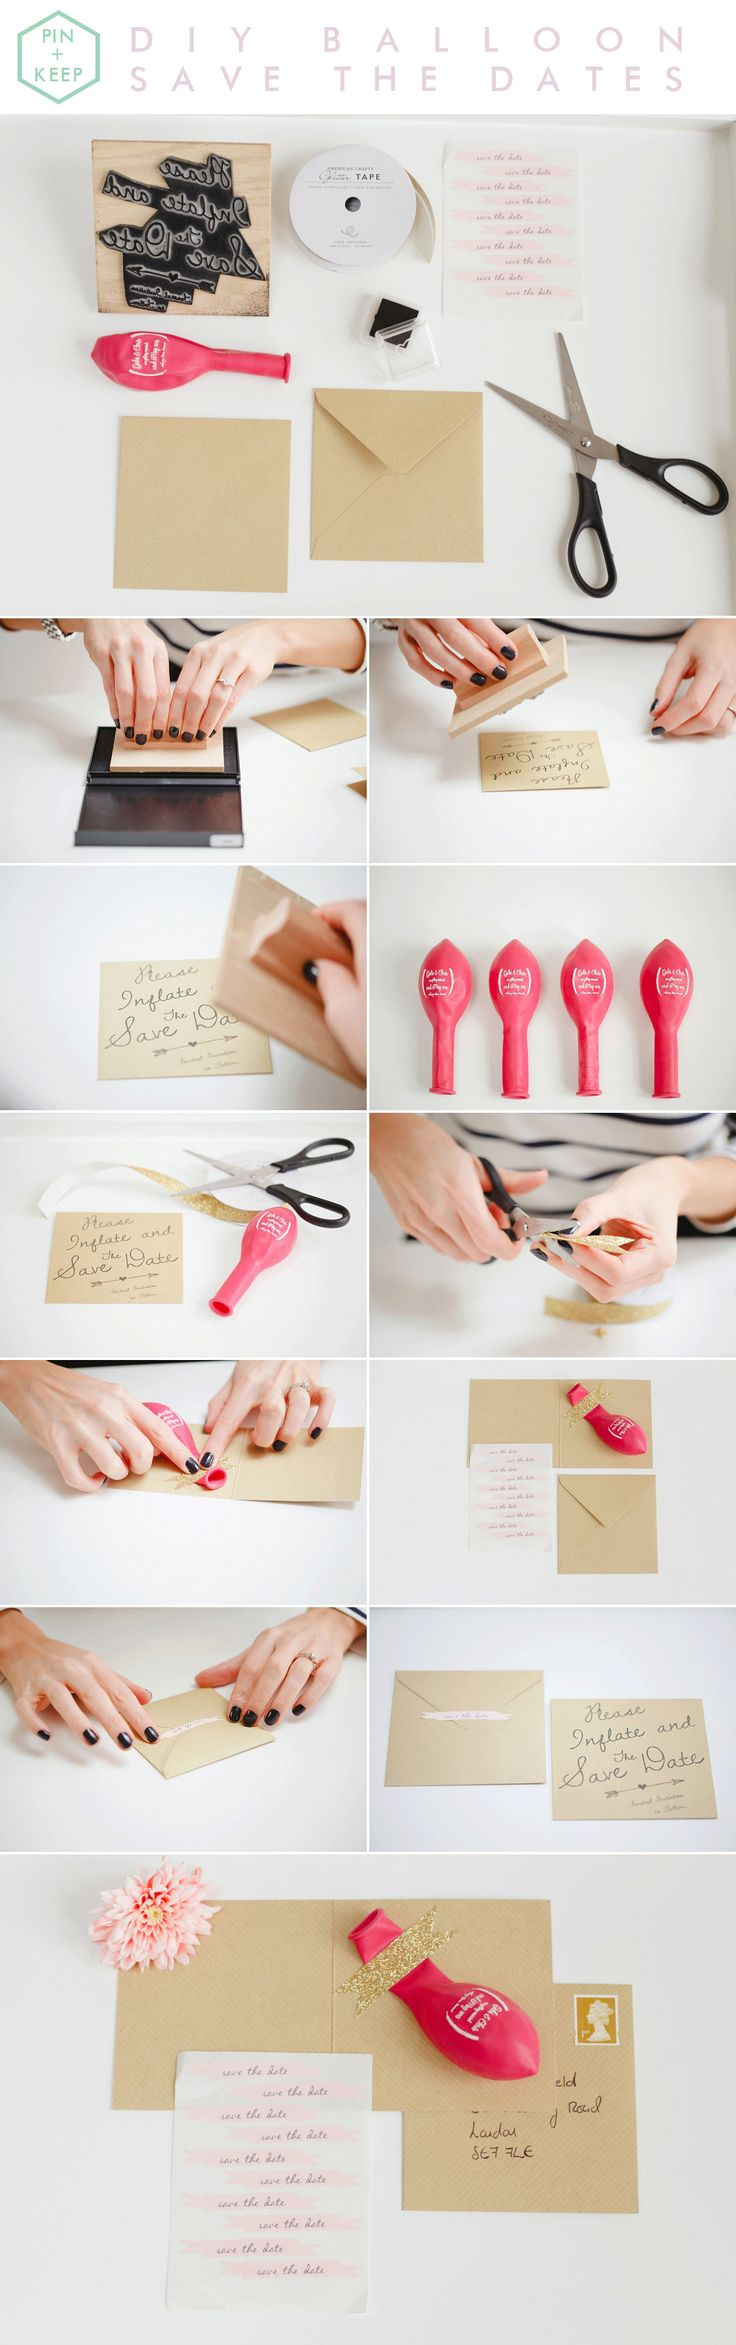 52 best DIYs images on Pinterest | Bricolage, Diys and Do it yourself